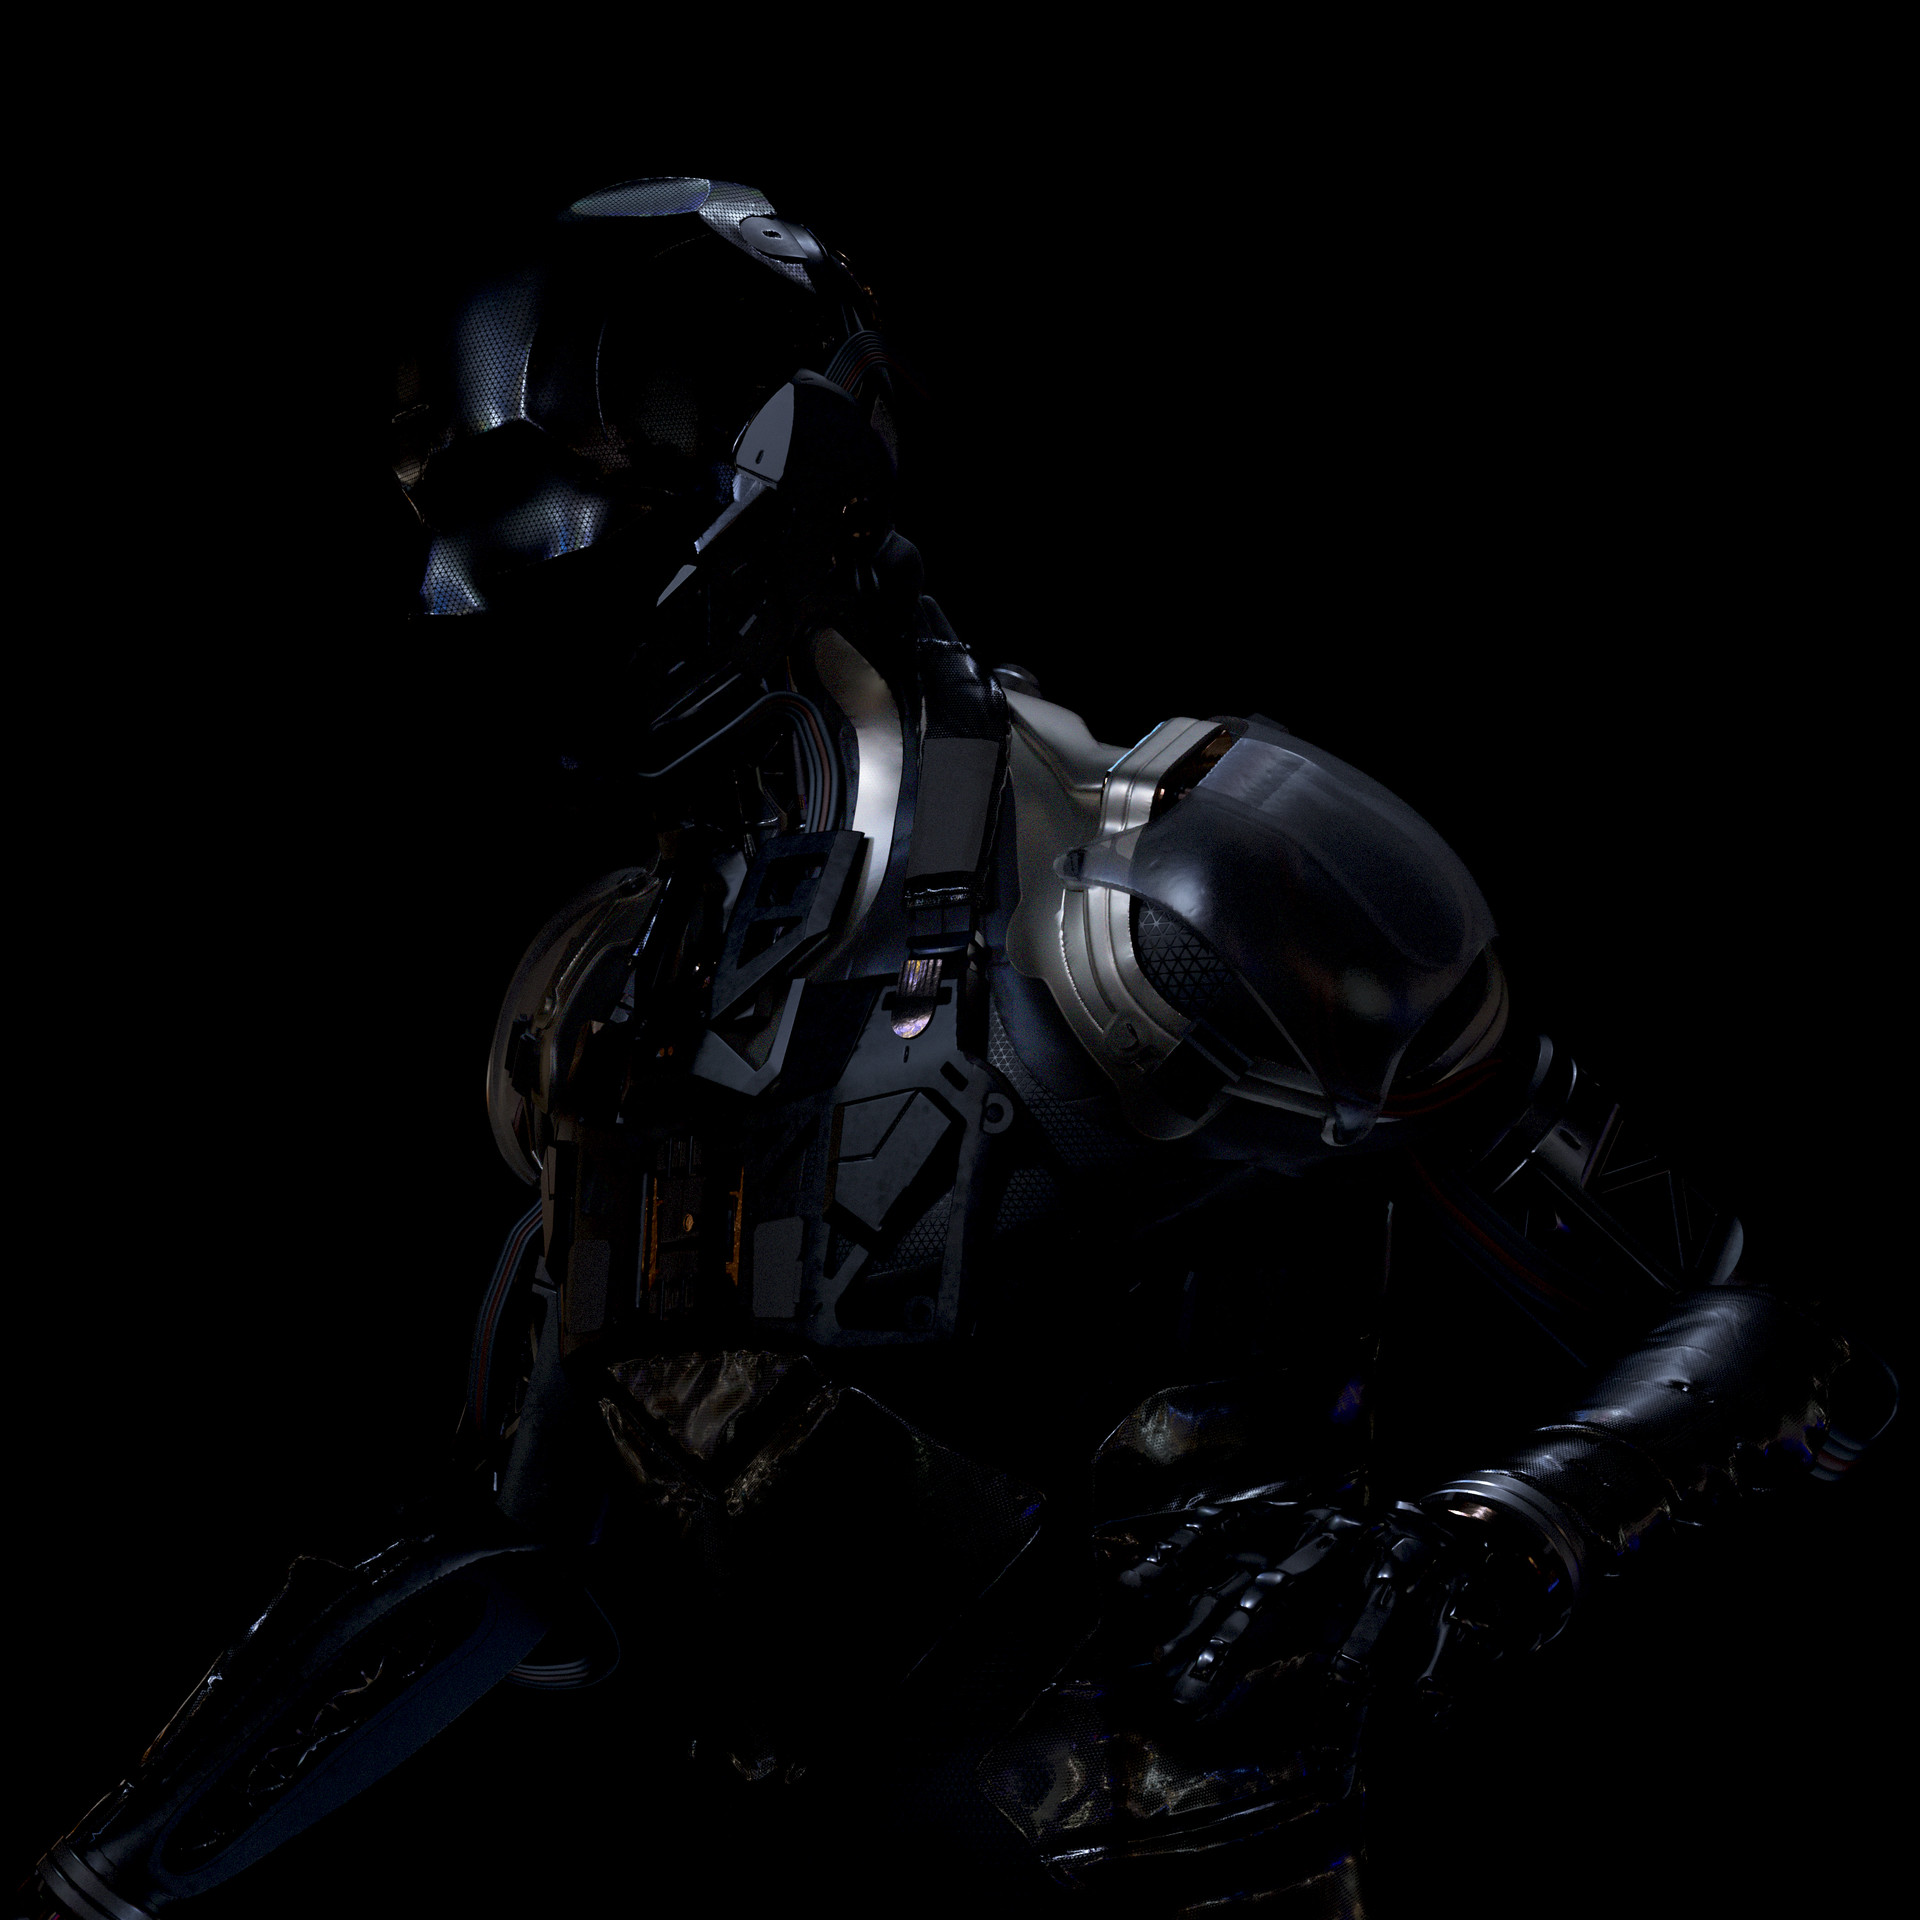 Accidental dark render that I liked the look of.